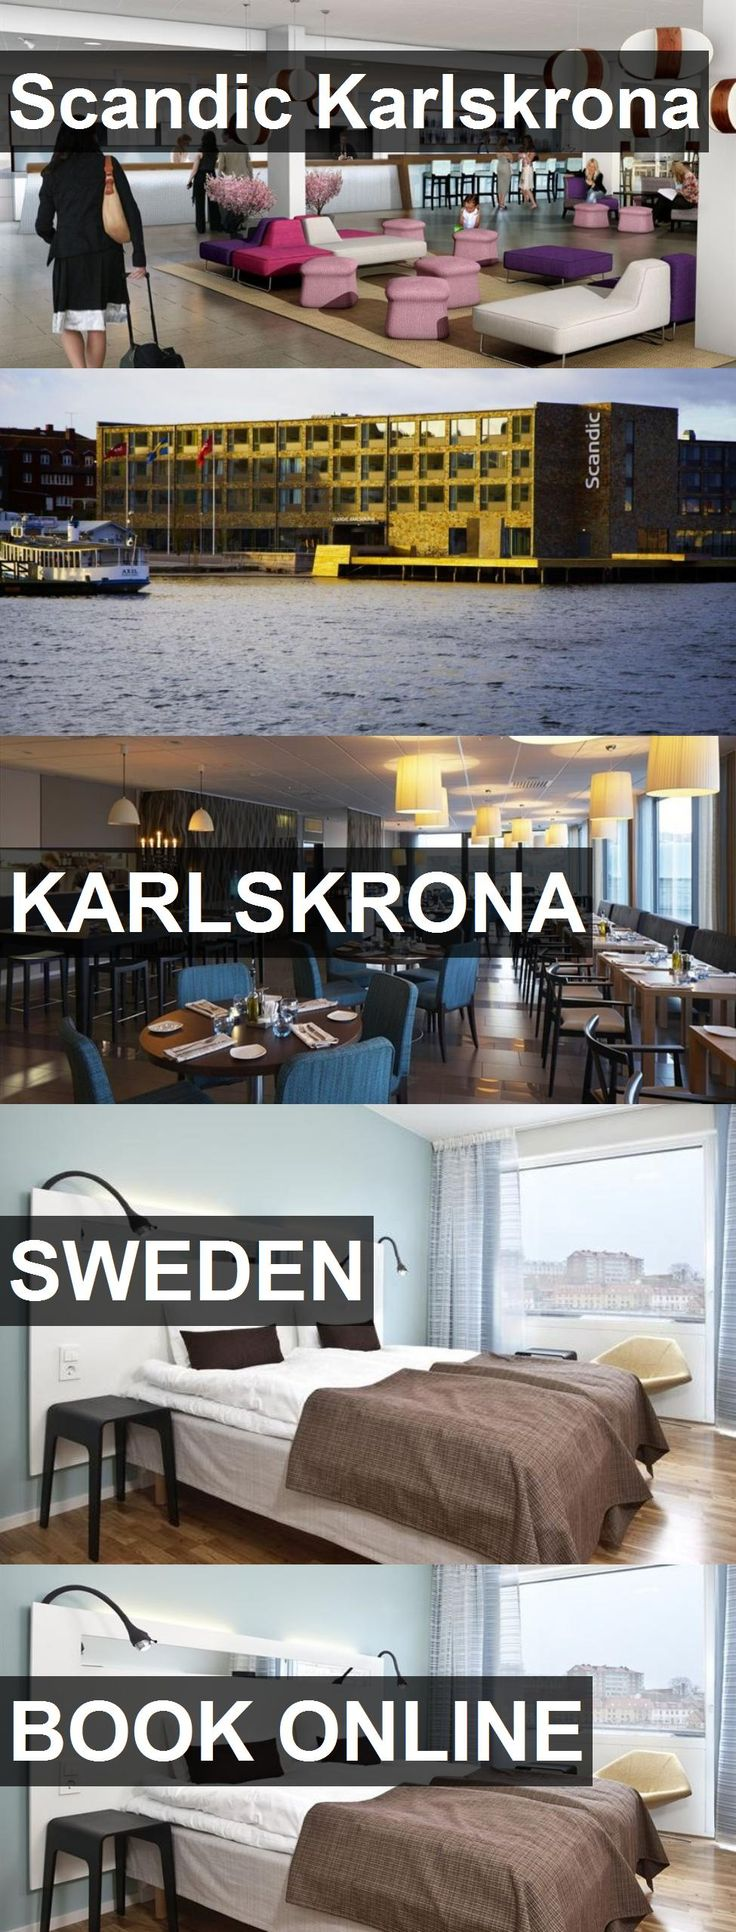 Hotel Scandic Karlskrona in Karlskrona, Sweden. For more information, photos, reviews and best prices please follow the link. #Sweden #Karlskrona #travel #vacation #hotel